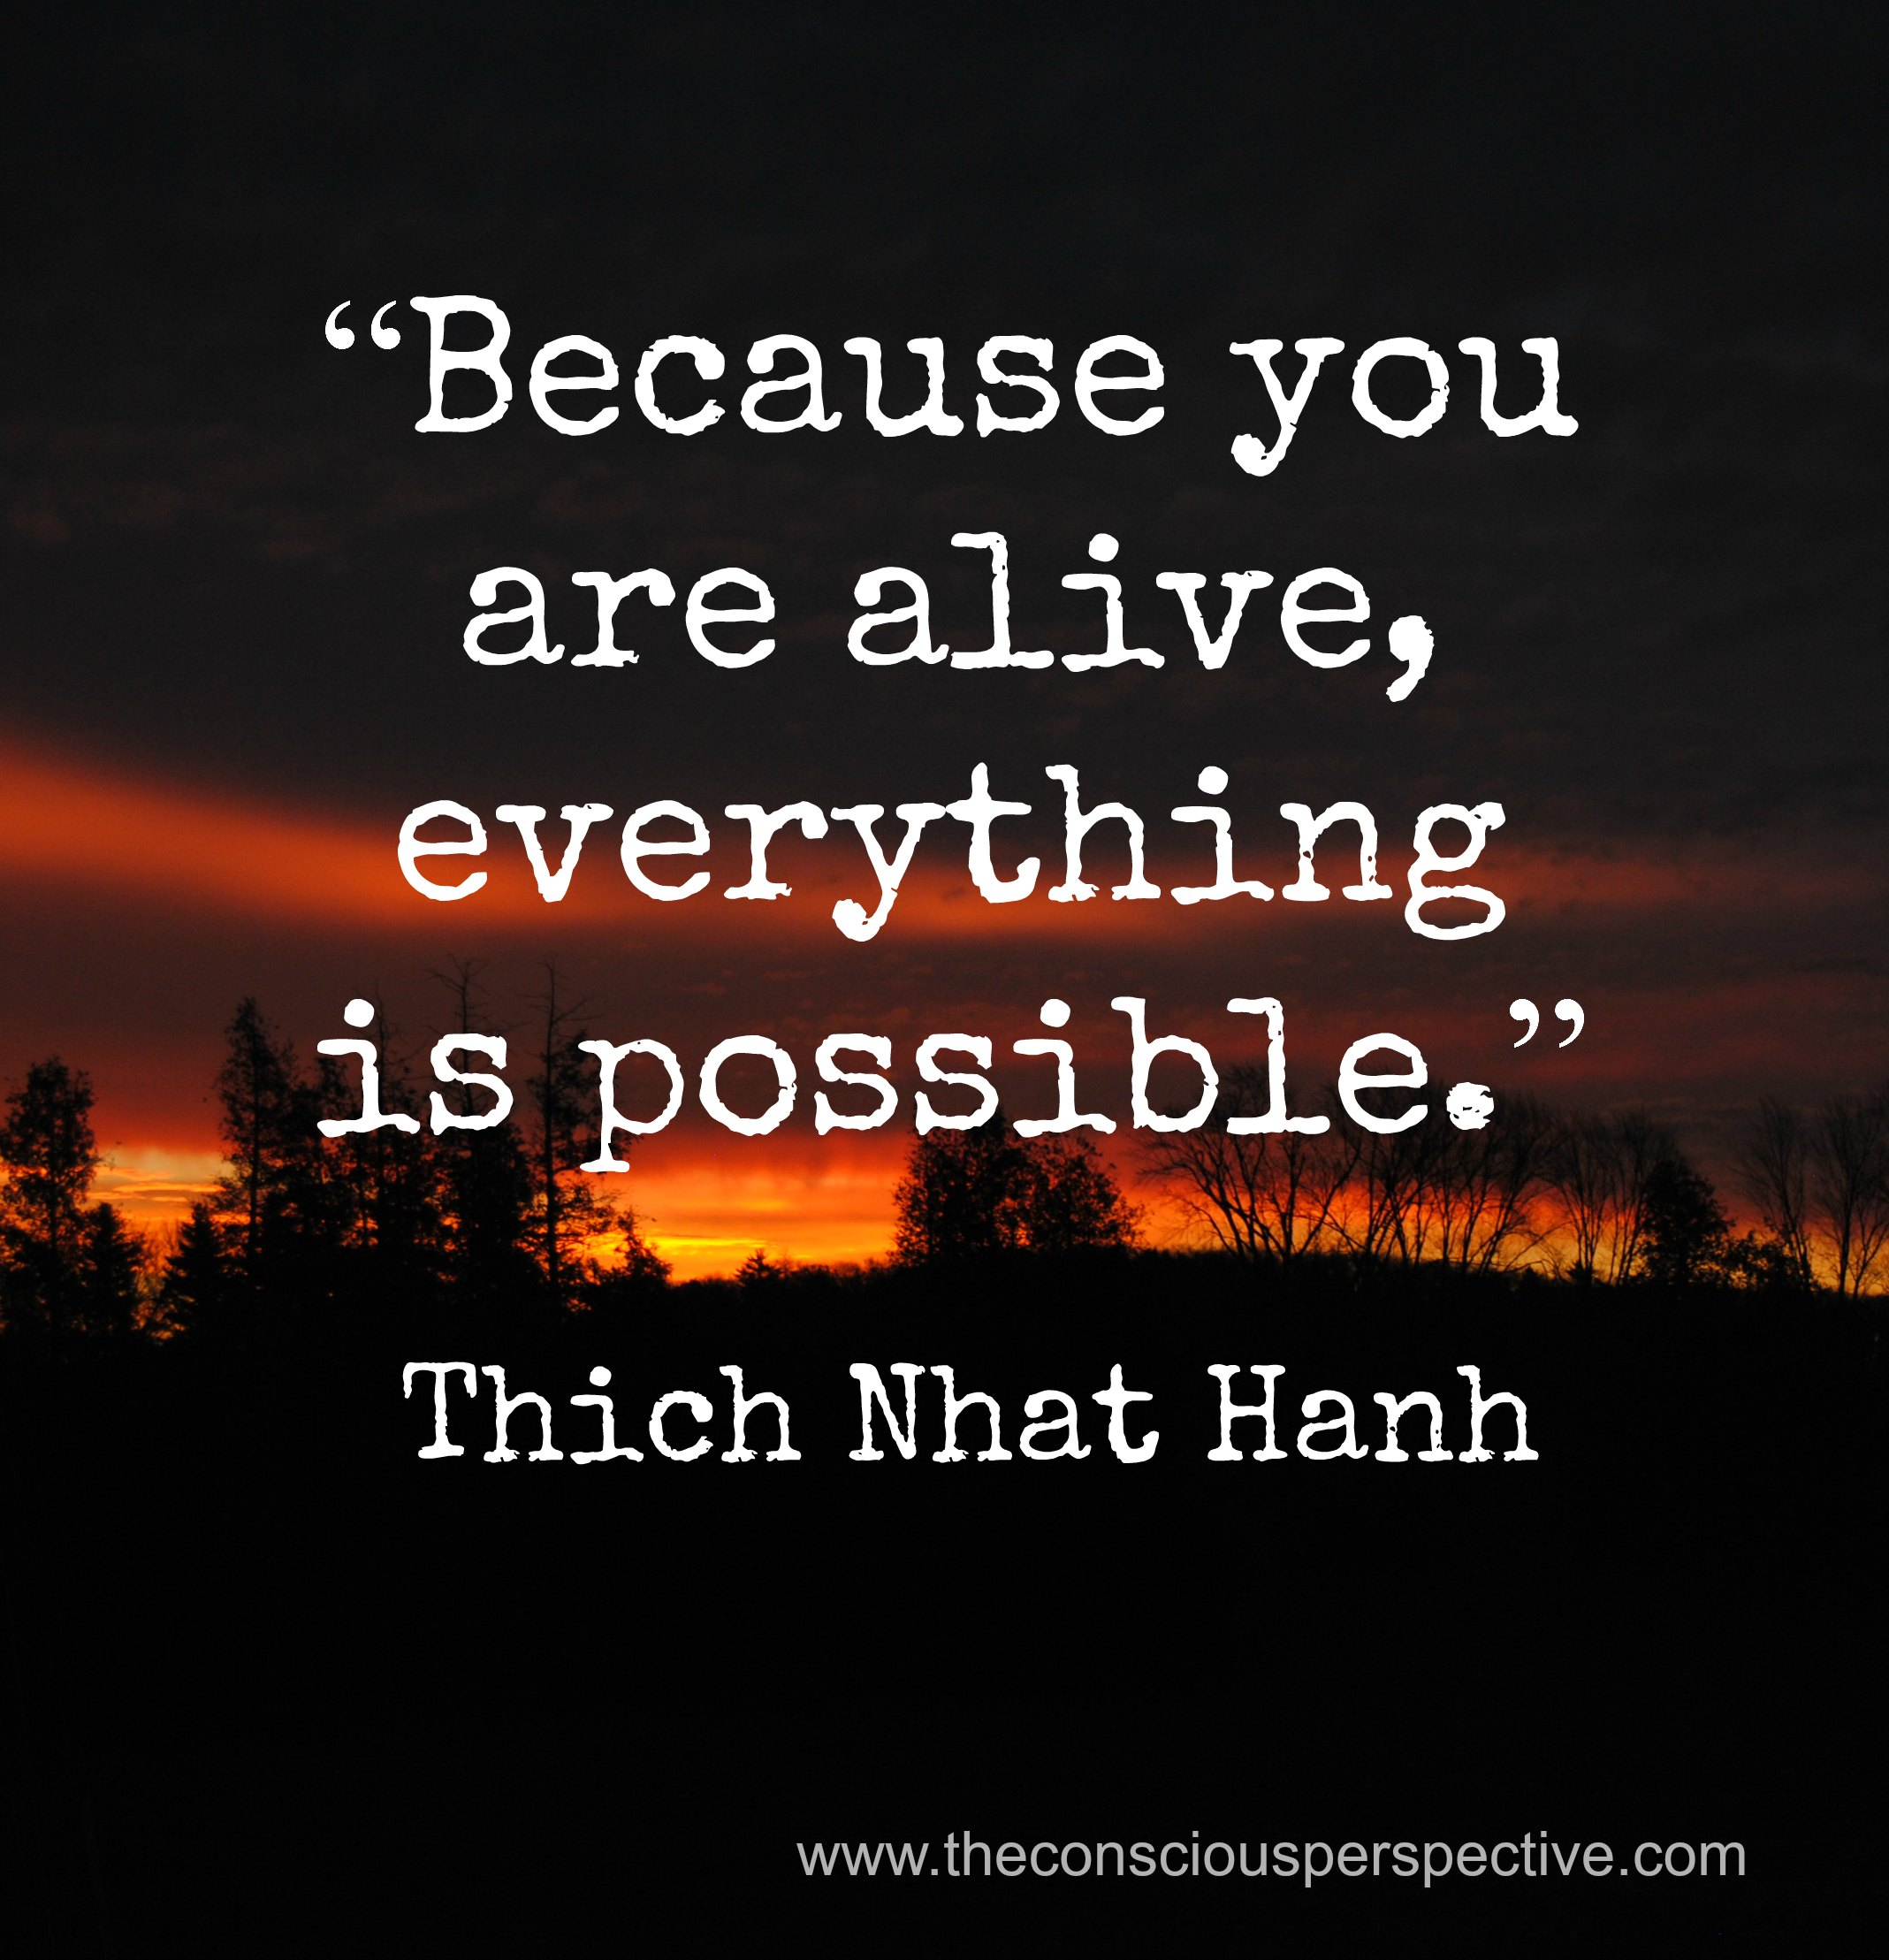 Thich Nhat Hanh's quote #8